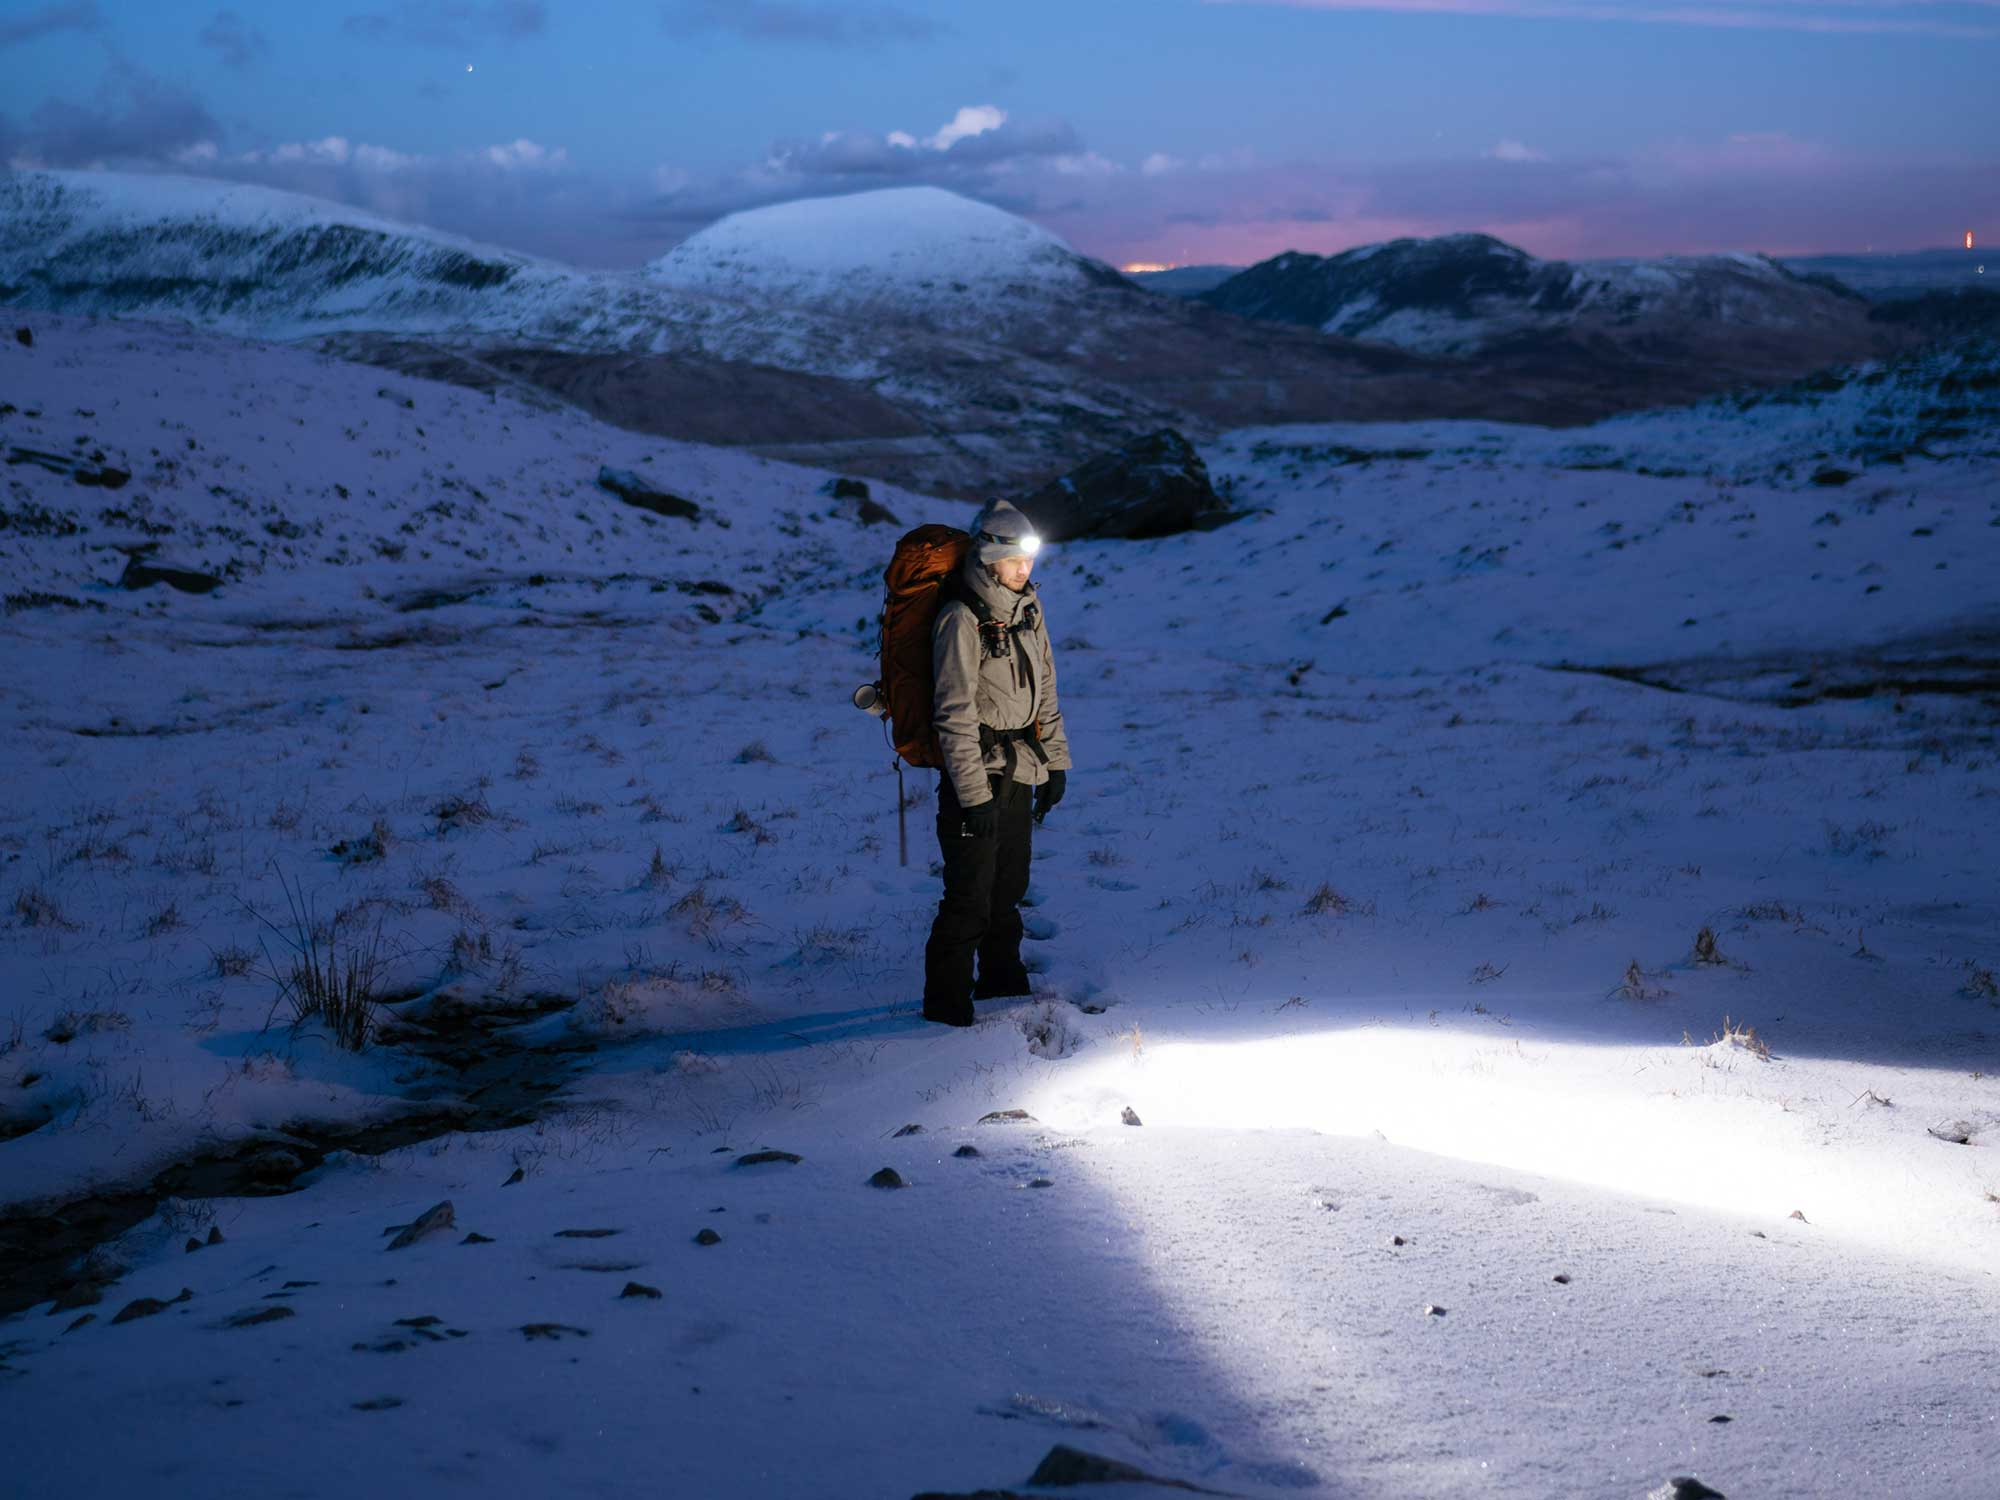 Person wearing the best headlamp at night